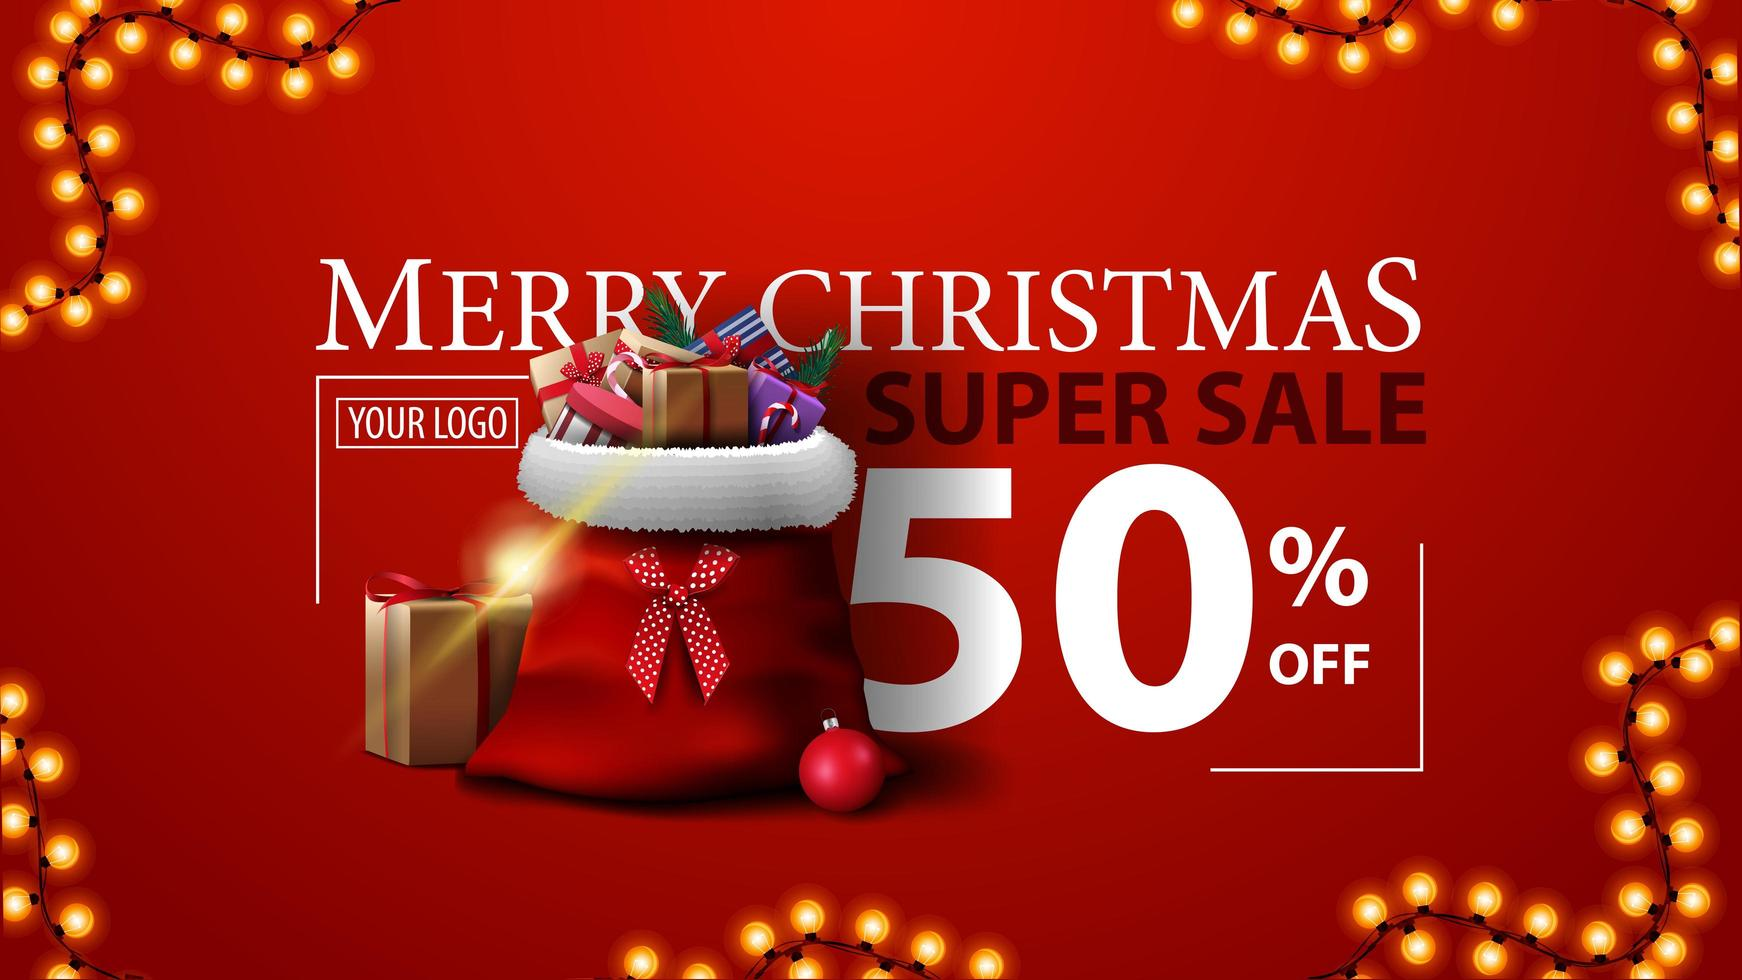 Christmas super sale, up to 50 off, red modern discount banner with Santa Claus bag with gifts vector